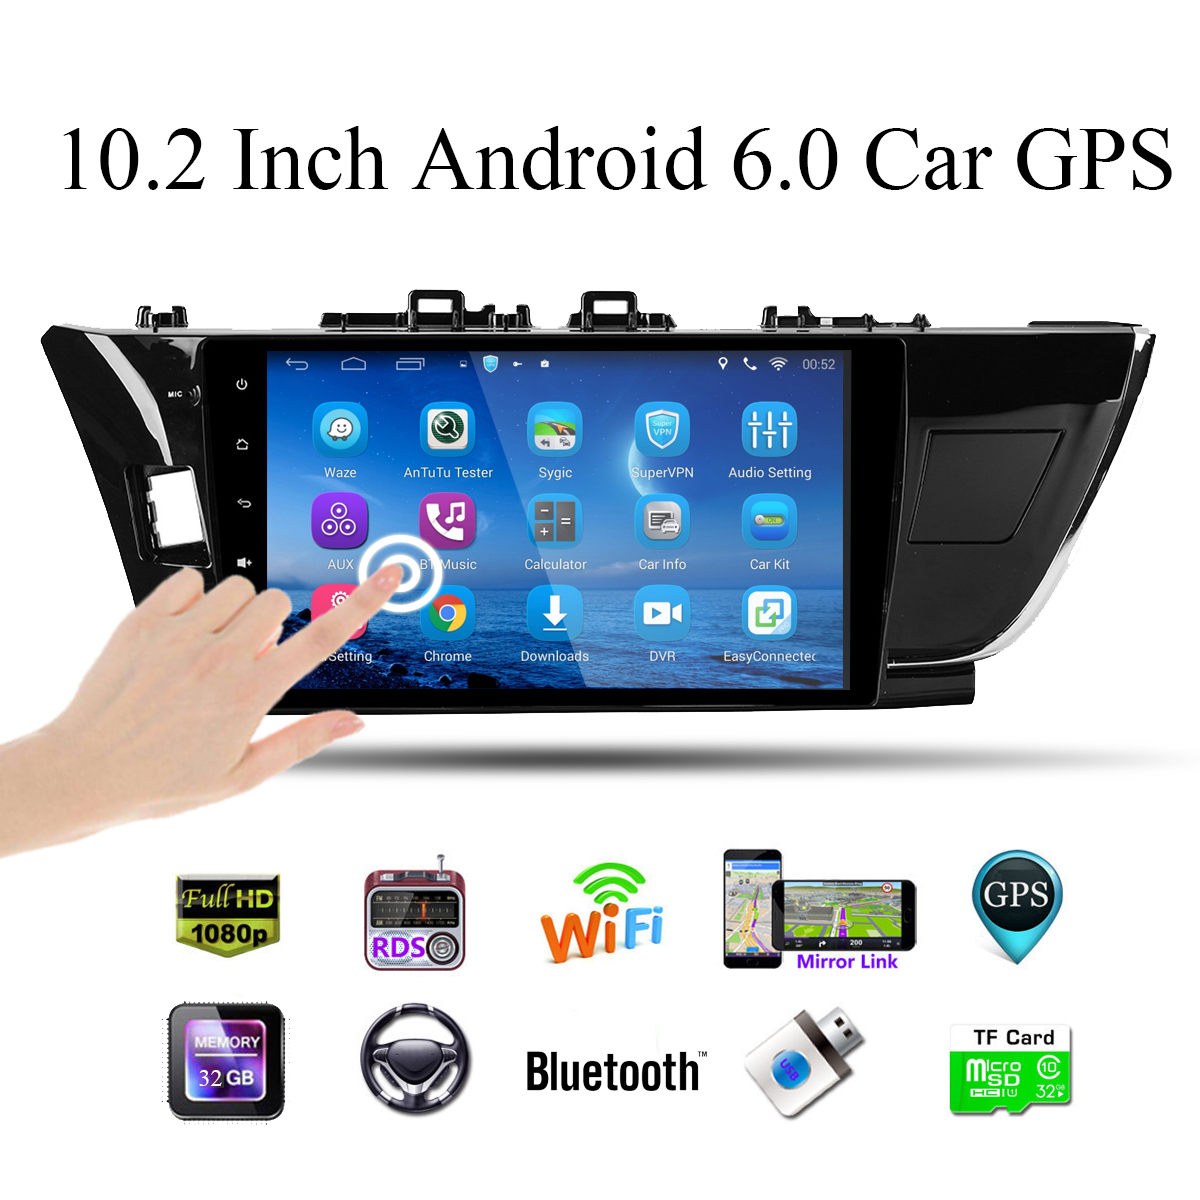 Android 6.0 4G Version 10.2 Inch Dual Spindle GPS Module Navigation For Toyota Corolla 2014-2016